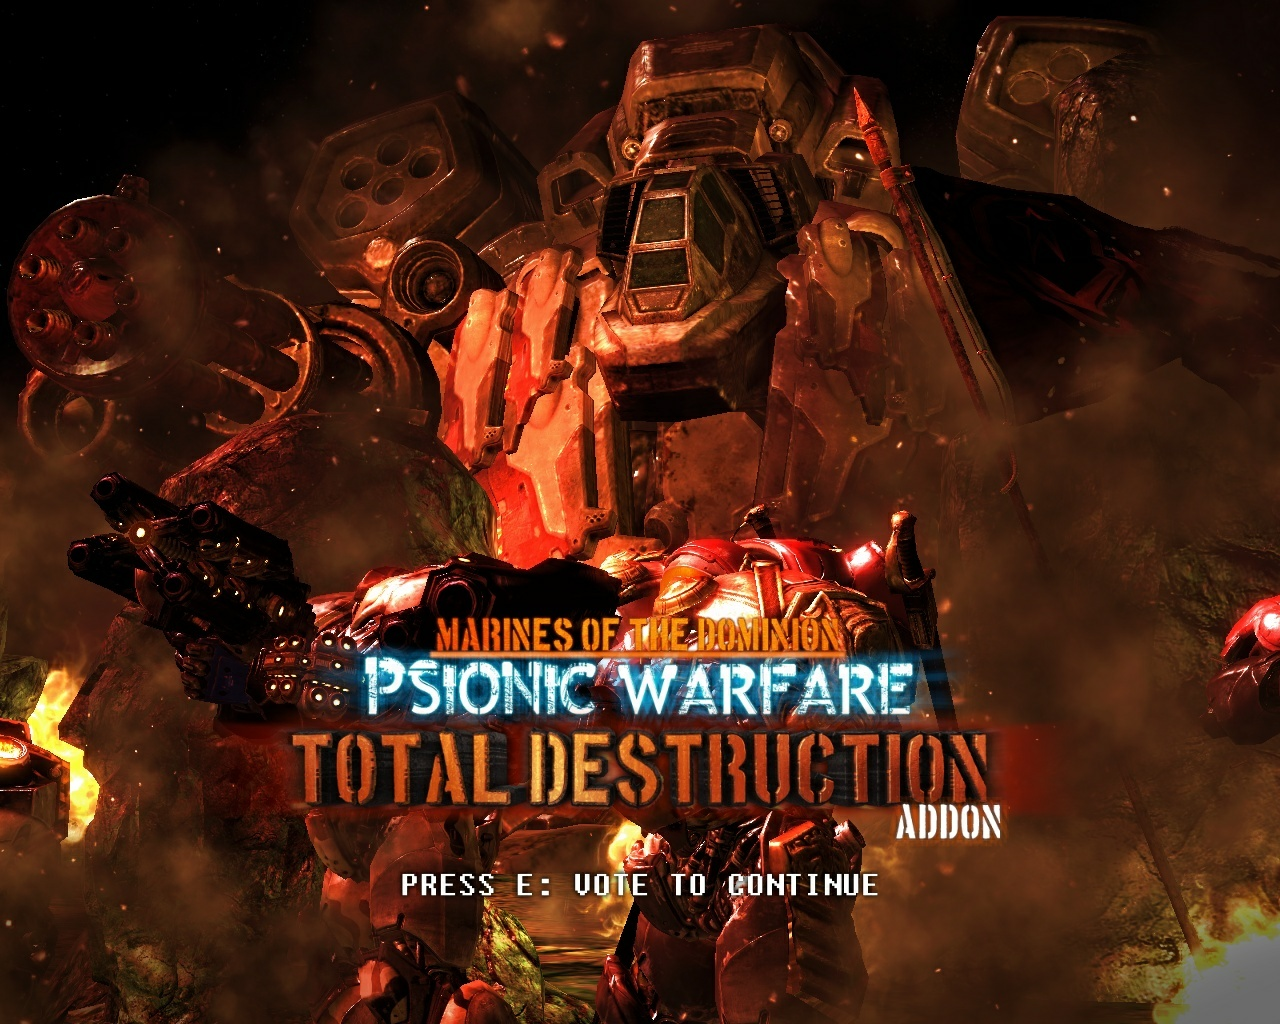 MOTD: Psionic Warfare